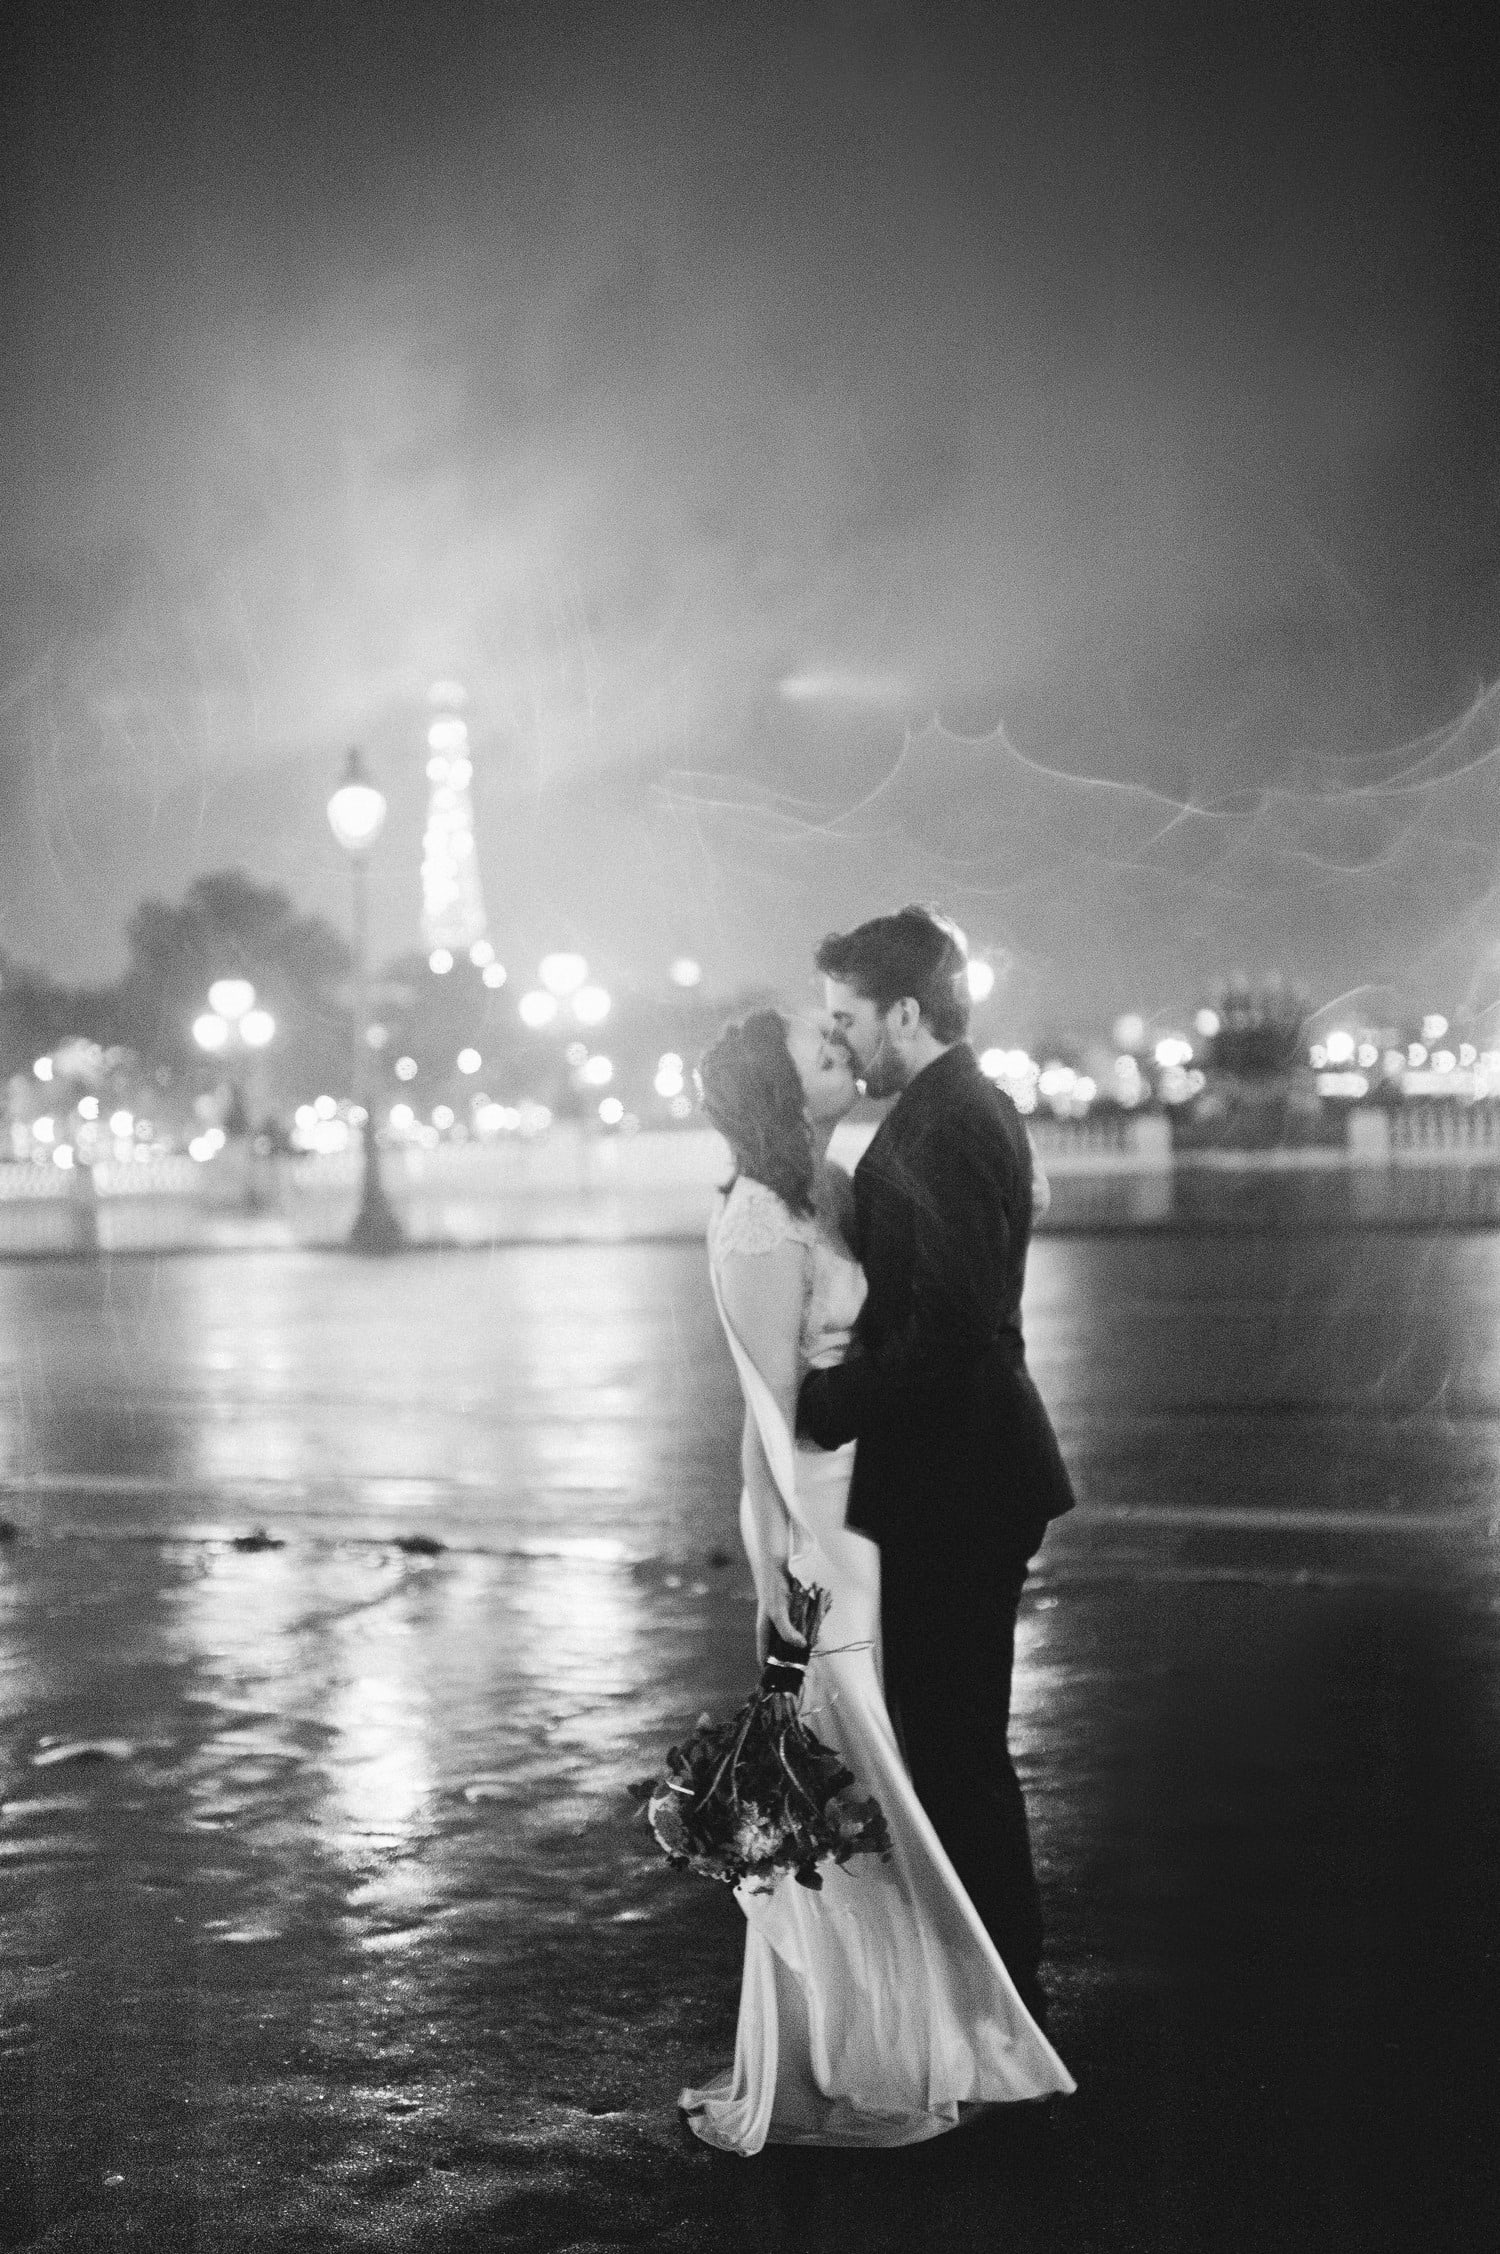 A rainy night in Paris